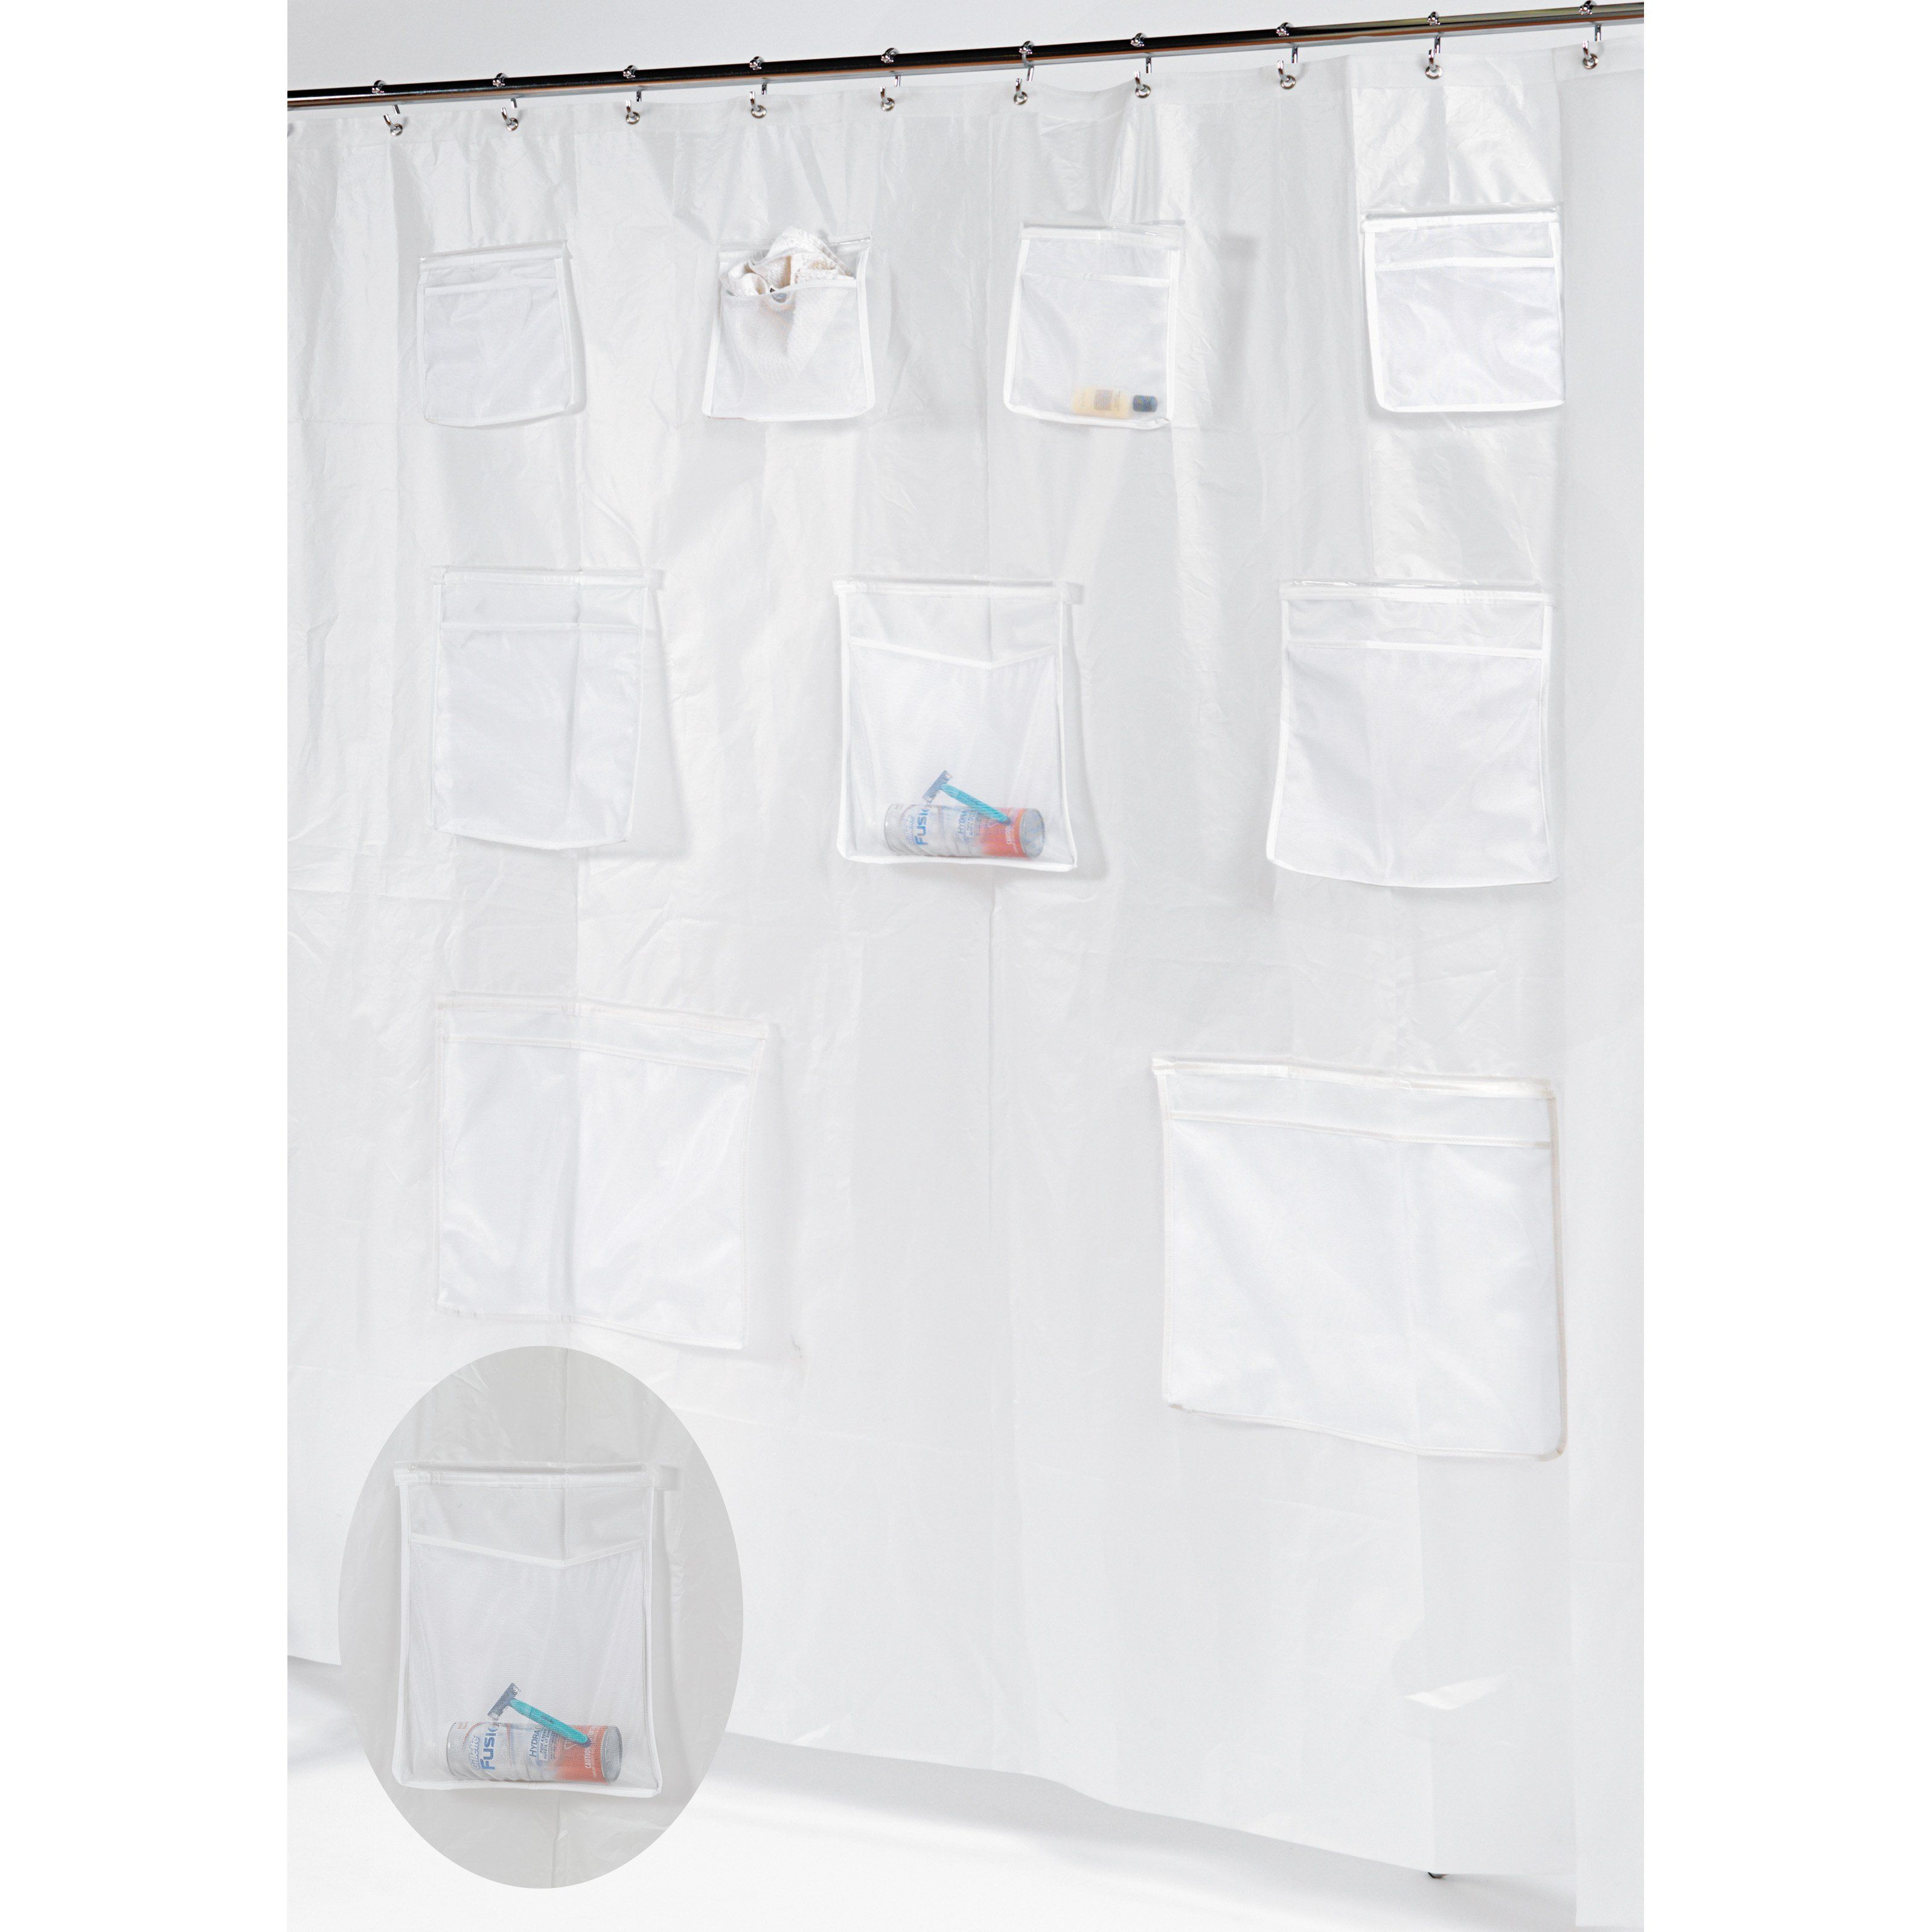 Carnation Home Fashions Pockets Peva Shower Curtain Liner With 9 Mesh Storage Pockets Vinyl Shower Curtains Hookless Shower Curtain Shower Curtain